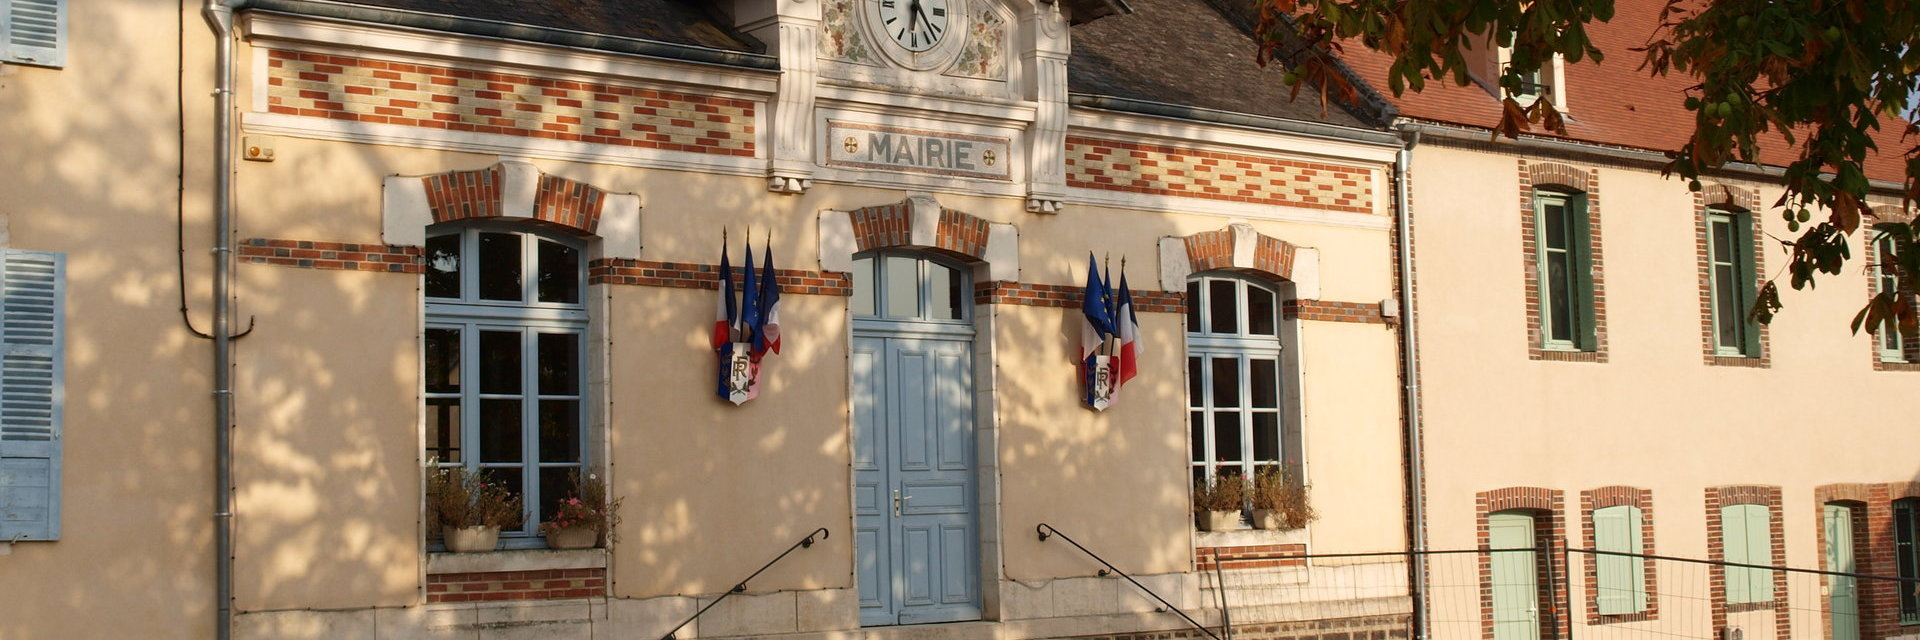 Mairie Commune Diges Puisaye Yonne